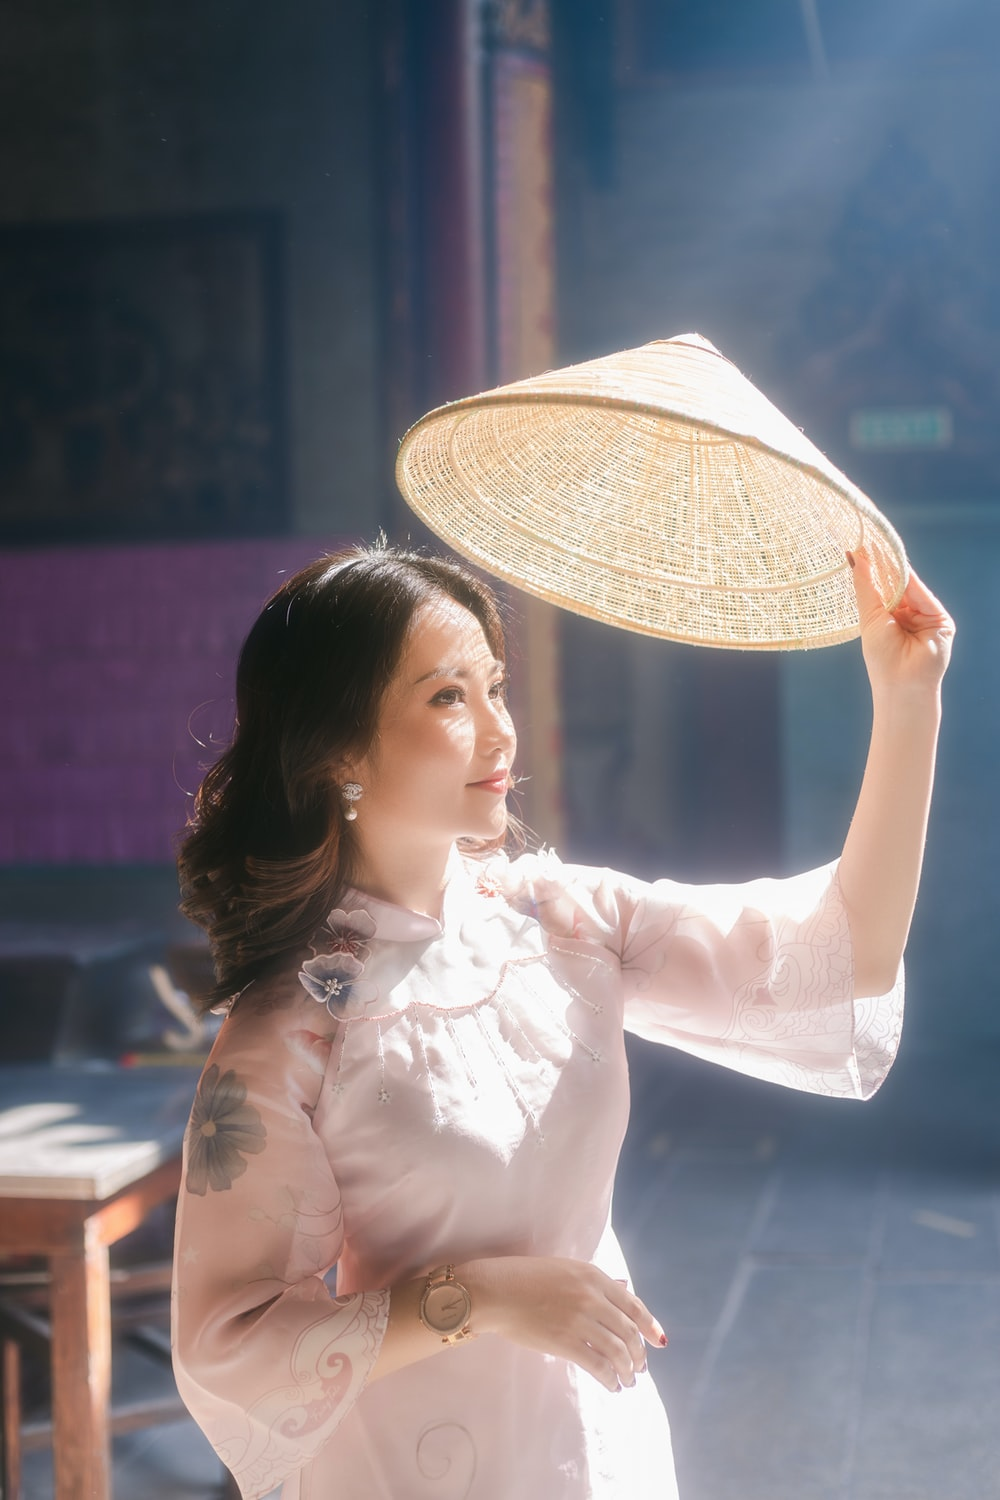 woman in white long sleeve shirt holding white hand fan